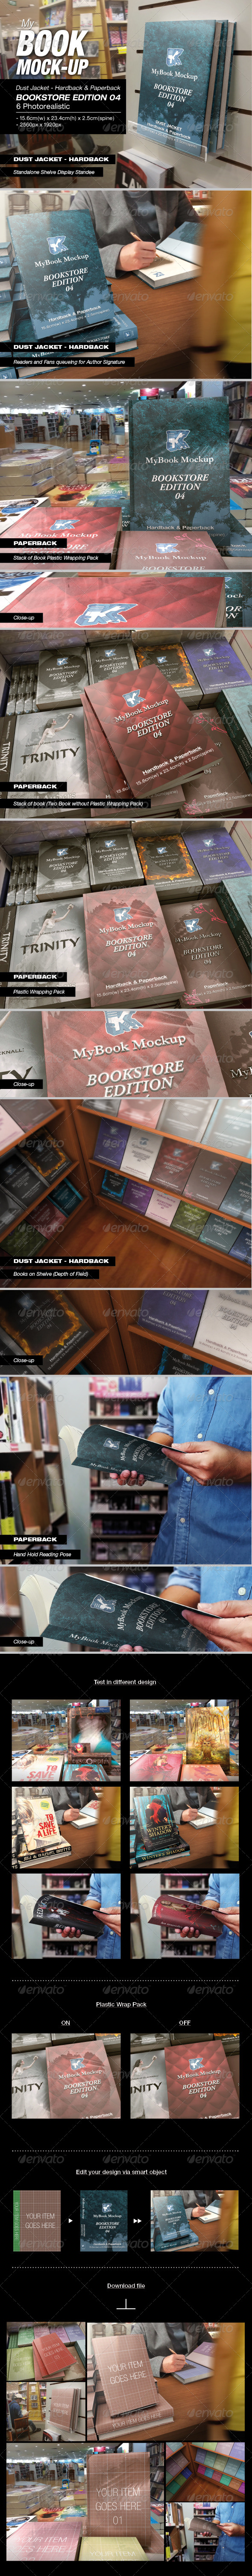 GraphicRiver MyBook Mock-up Bookstore Edition 04 7731739